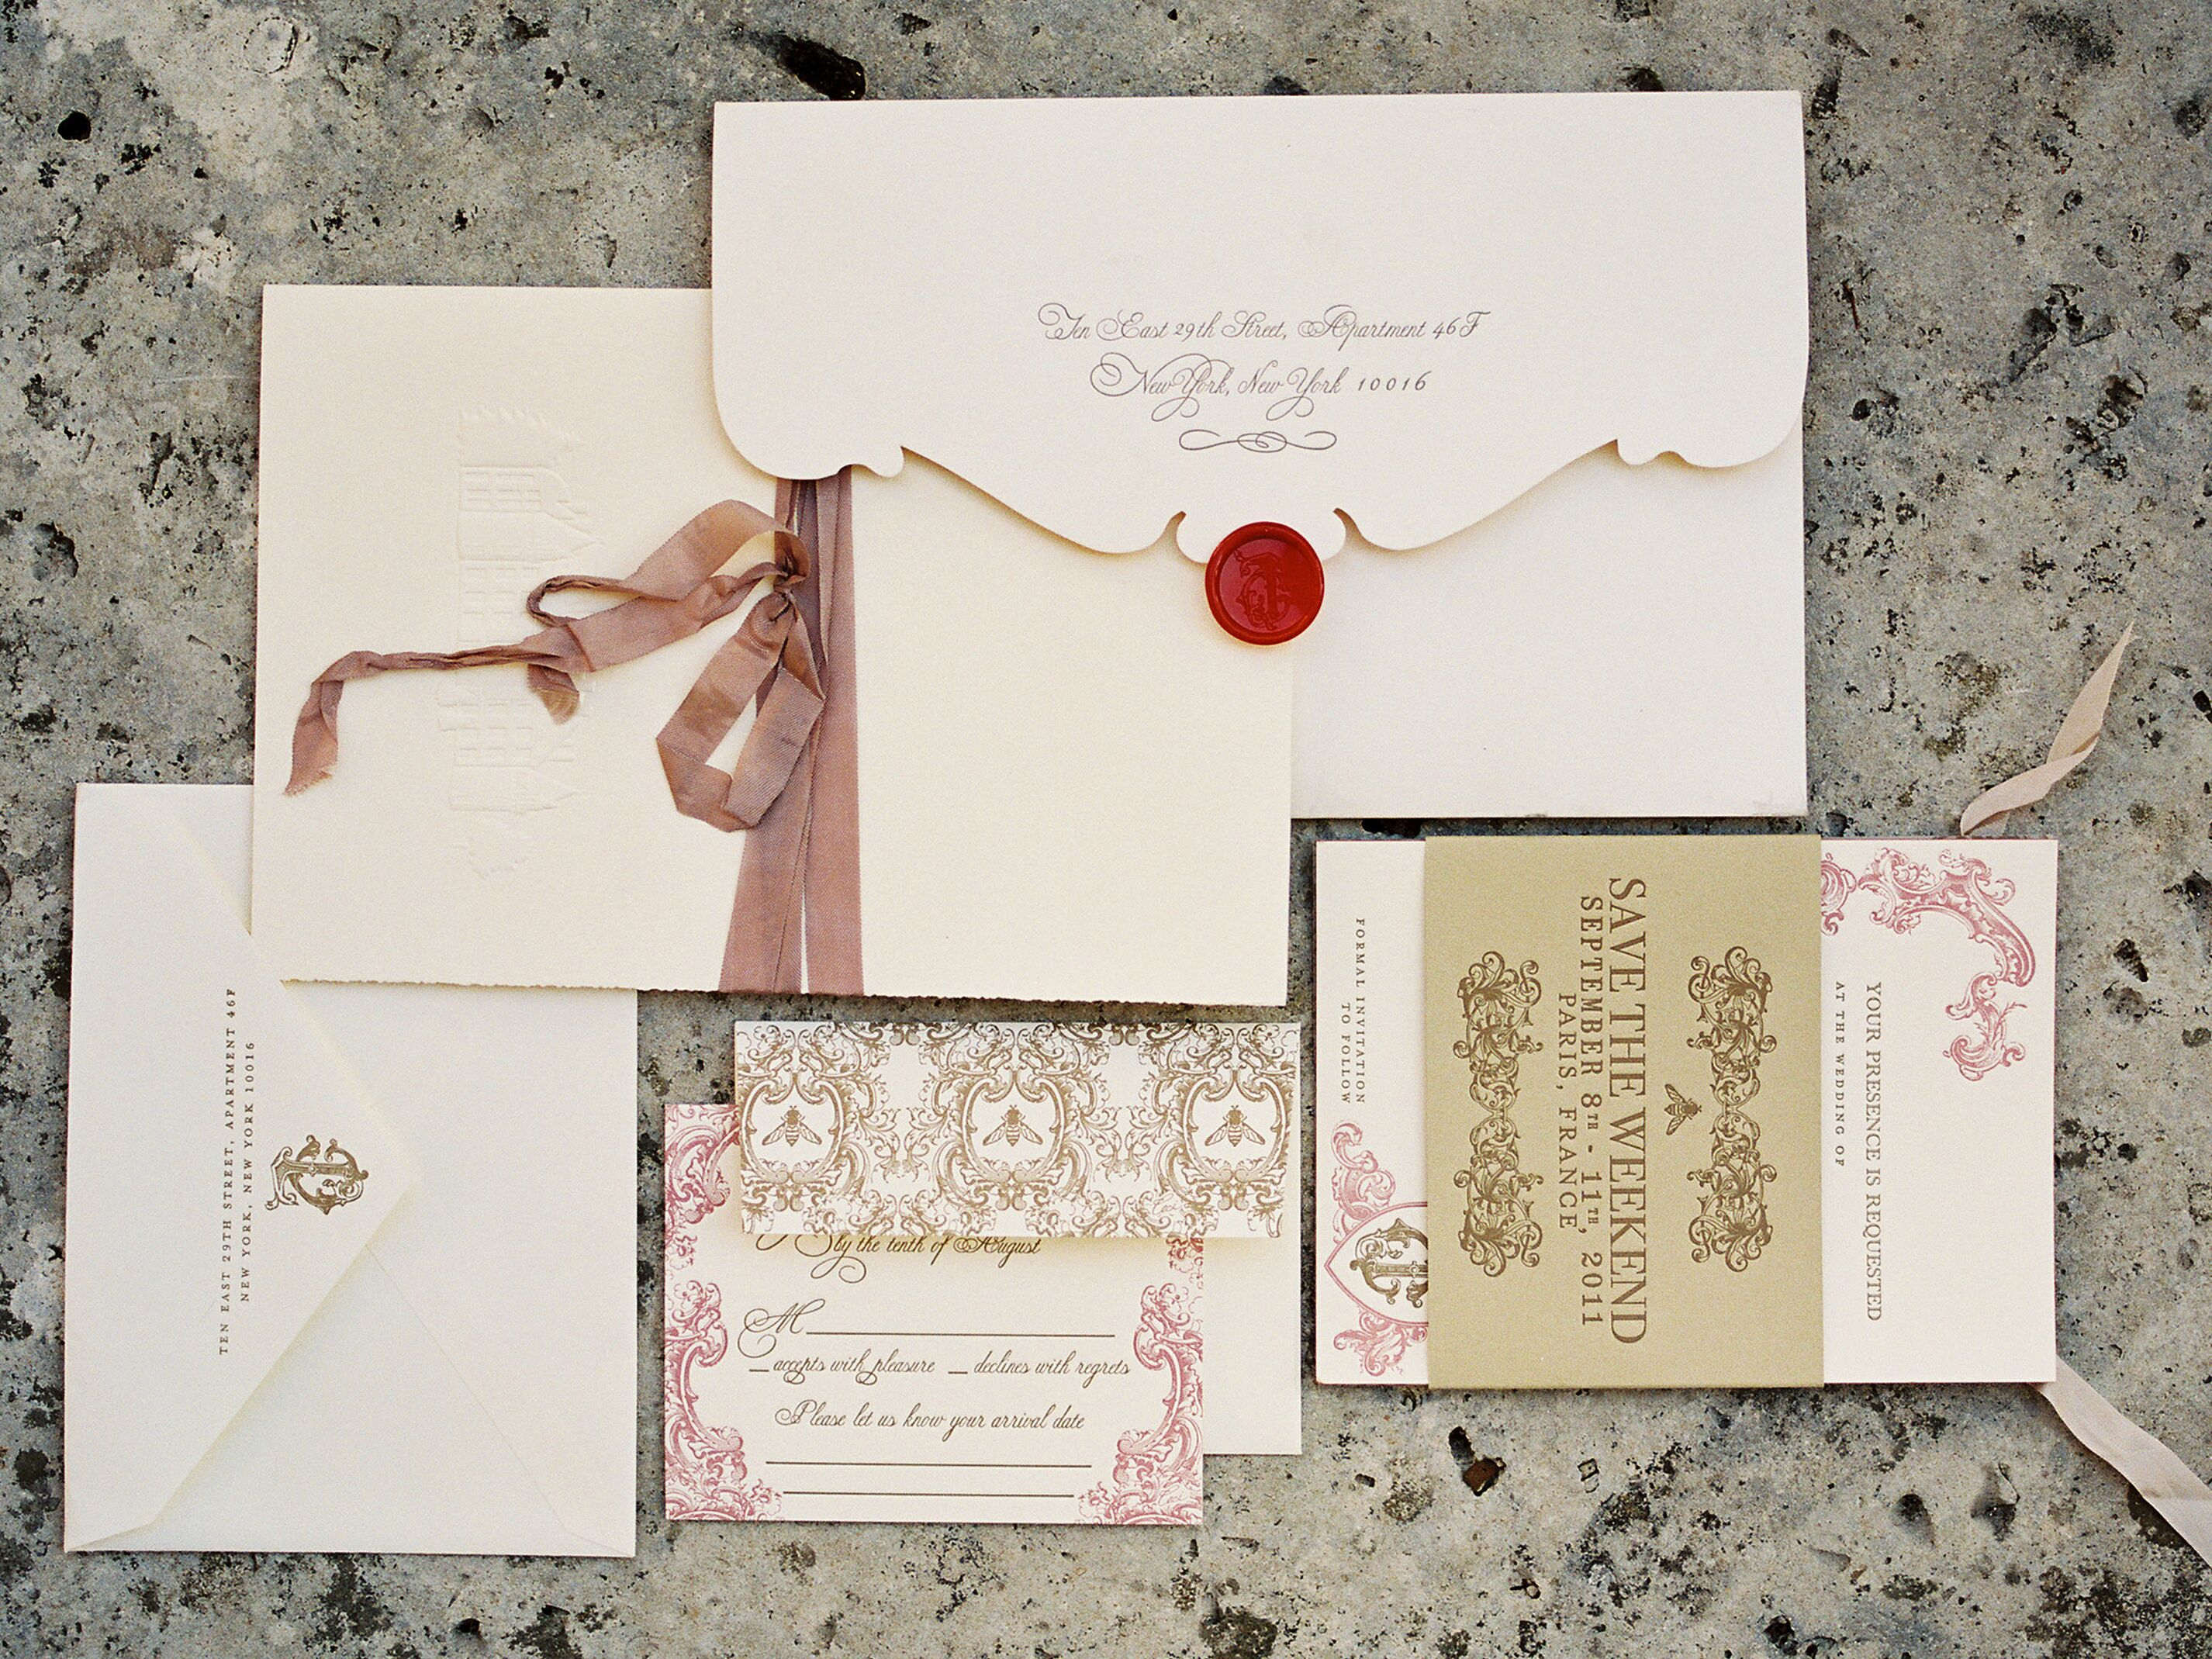 The Tradition Of Bride 39 S Pas Sending Out Wedding Invitations Along With Father Giving Away Have Their